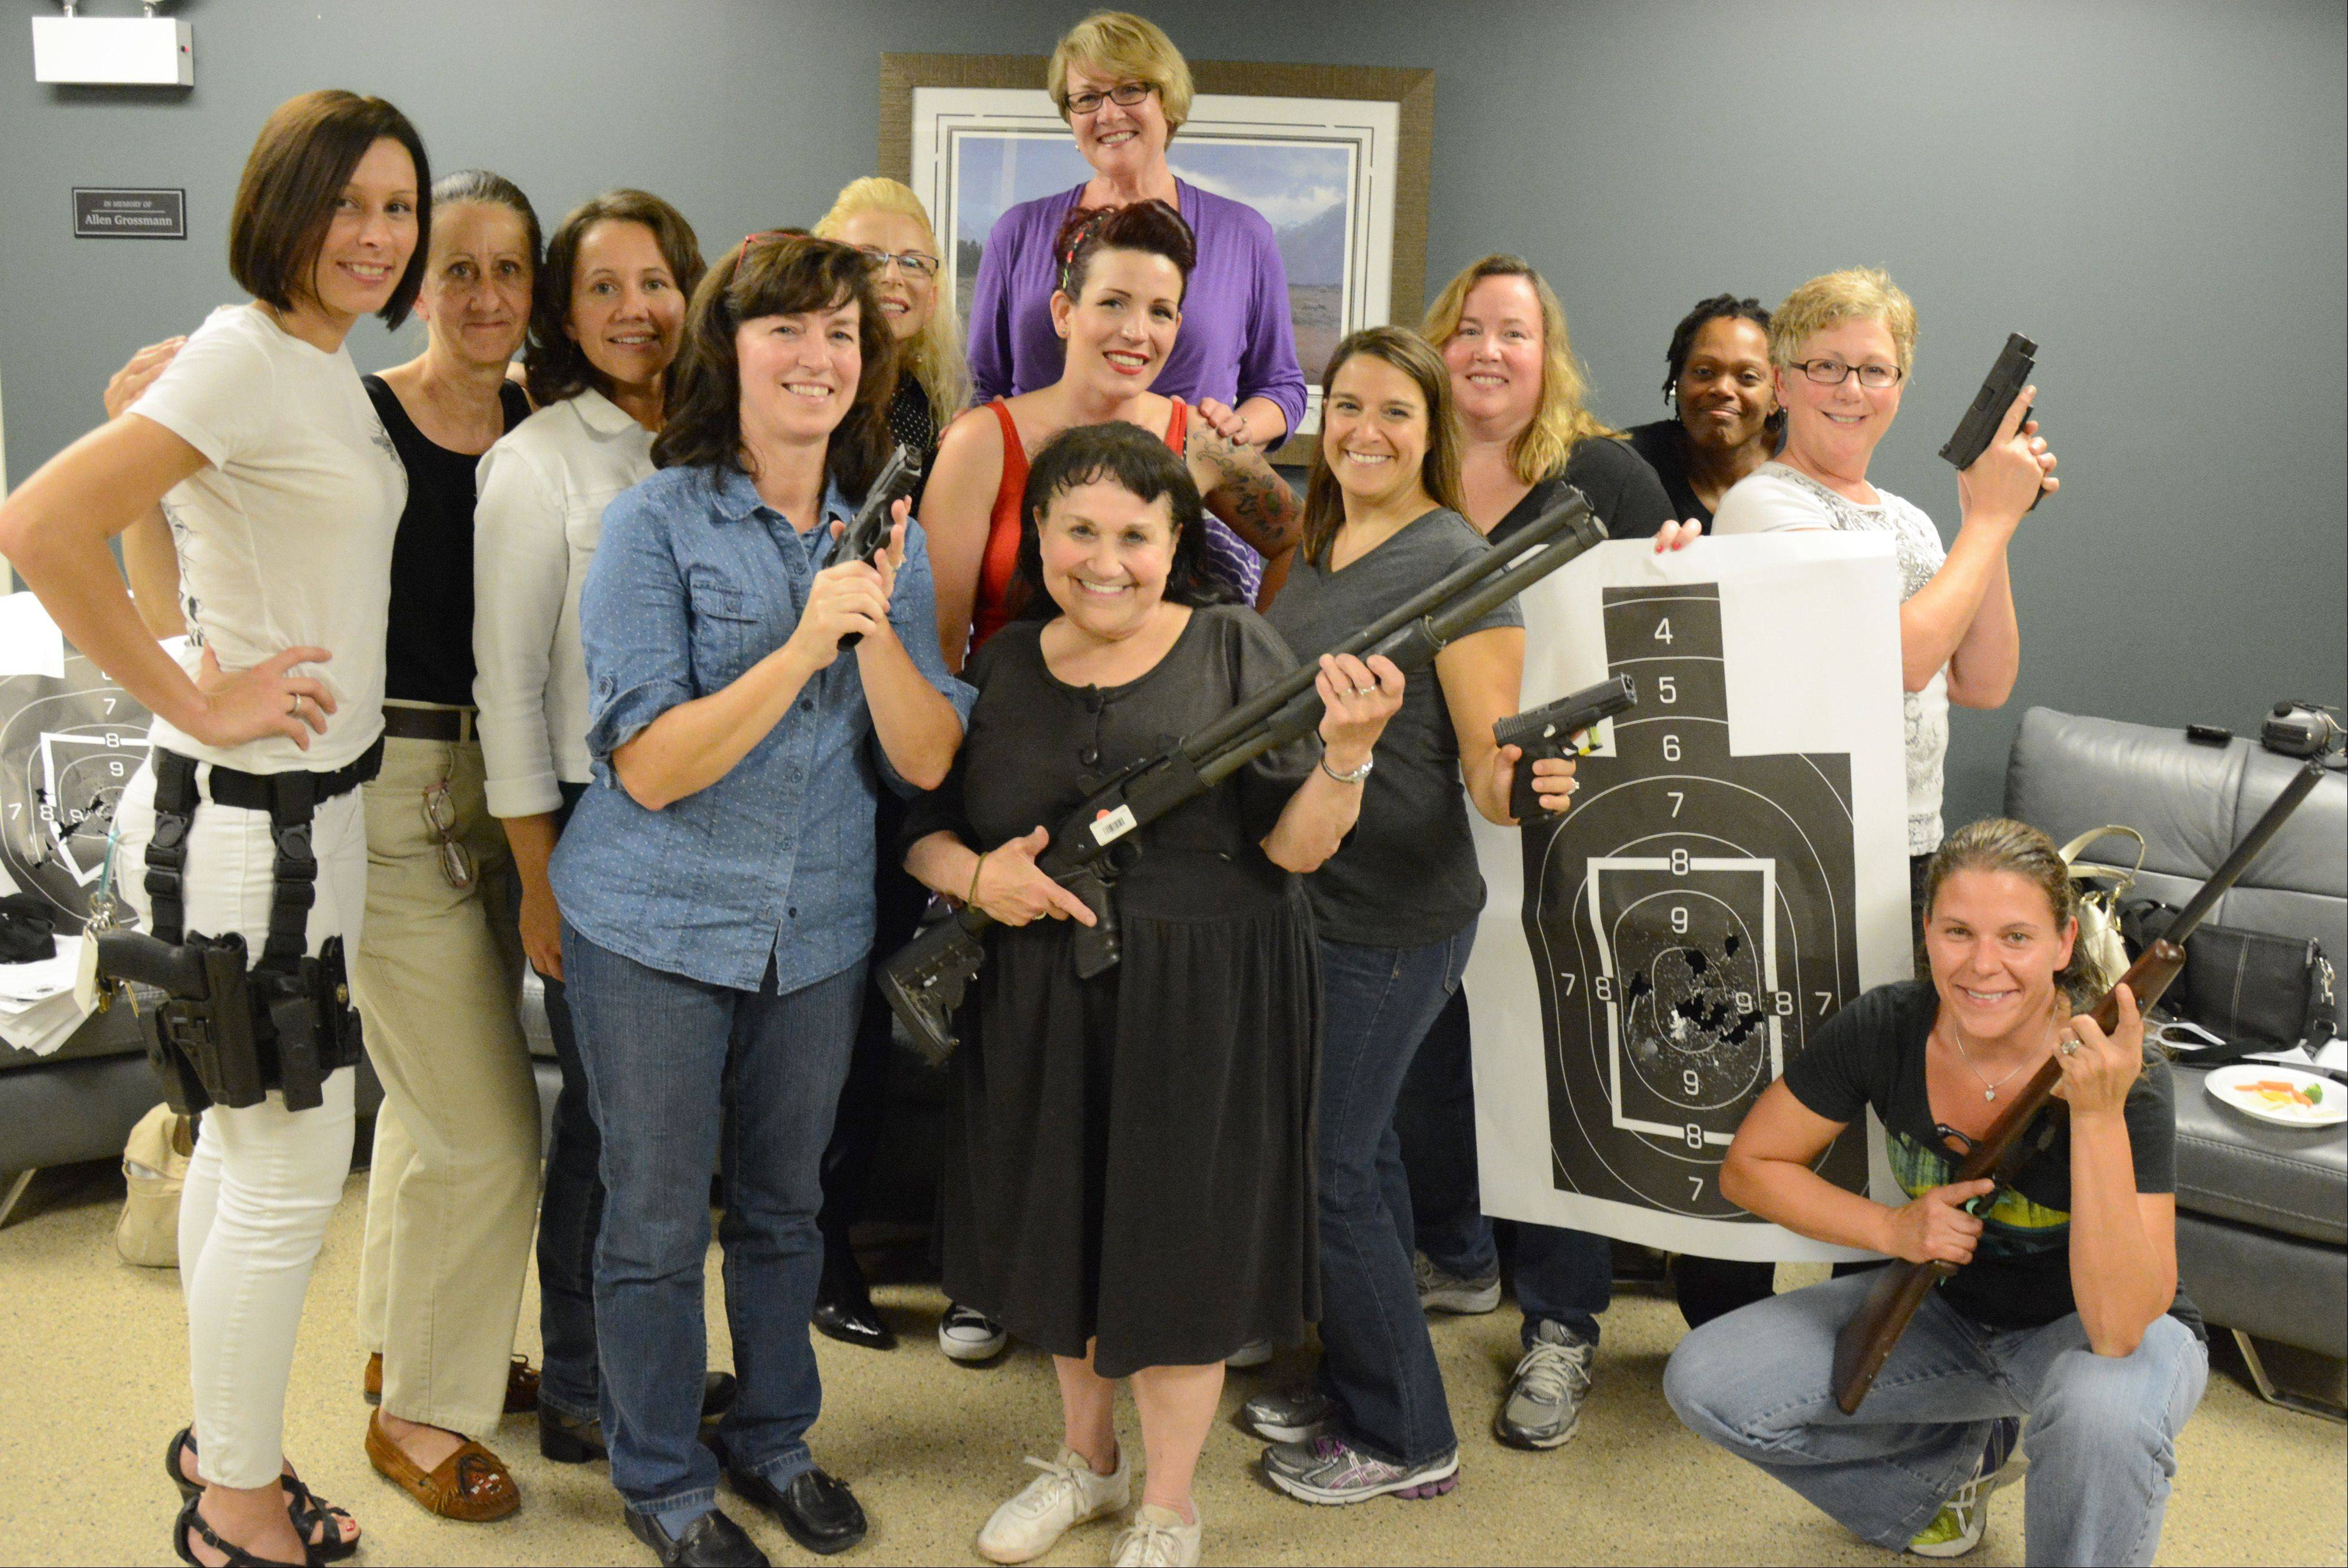 Participants pose for a photo during one of the monthly ladies' nights at Maxon, an indoor gun range and shooter's supply store in Des Plaines.